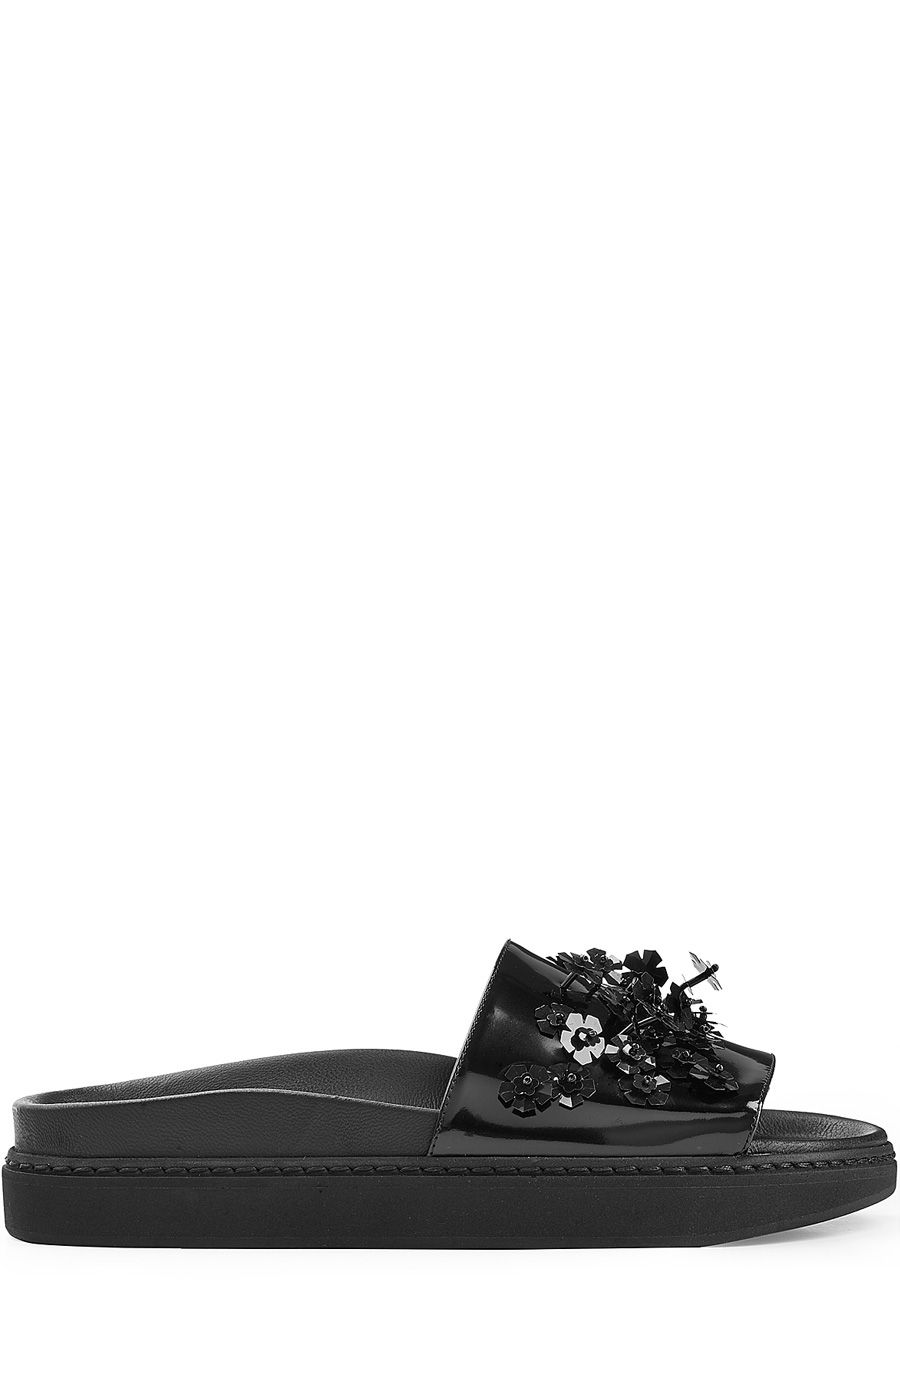 Black · SIMONE ROCHA Embellished Leather Sandals. #simonerocha #shoes # sandals